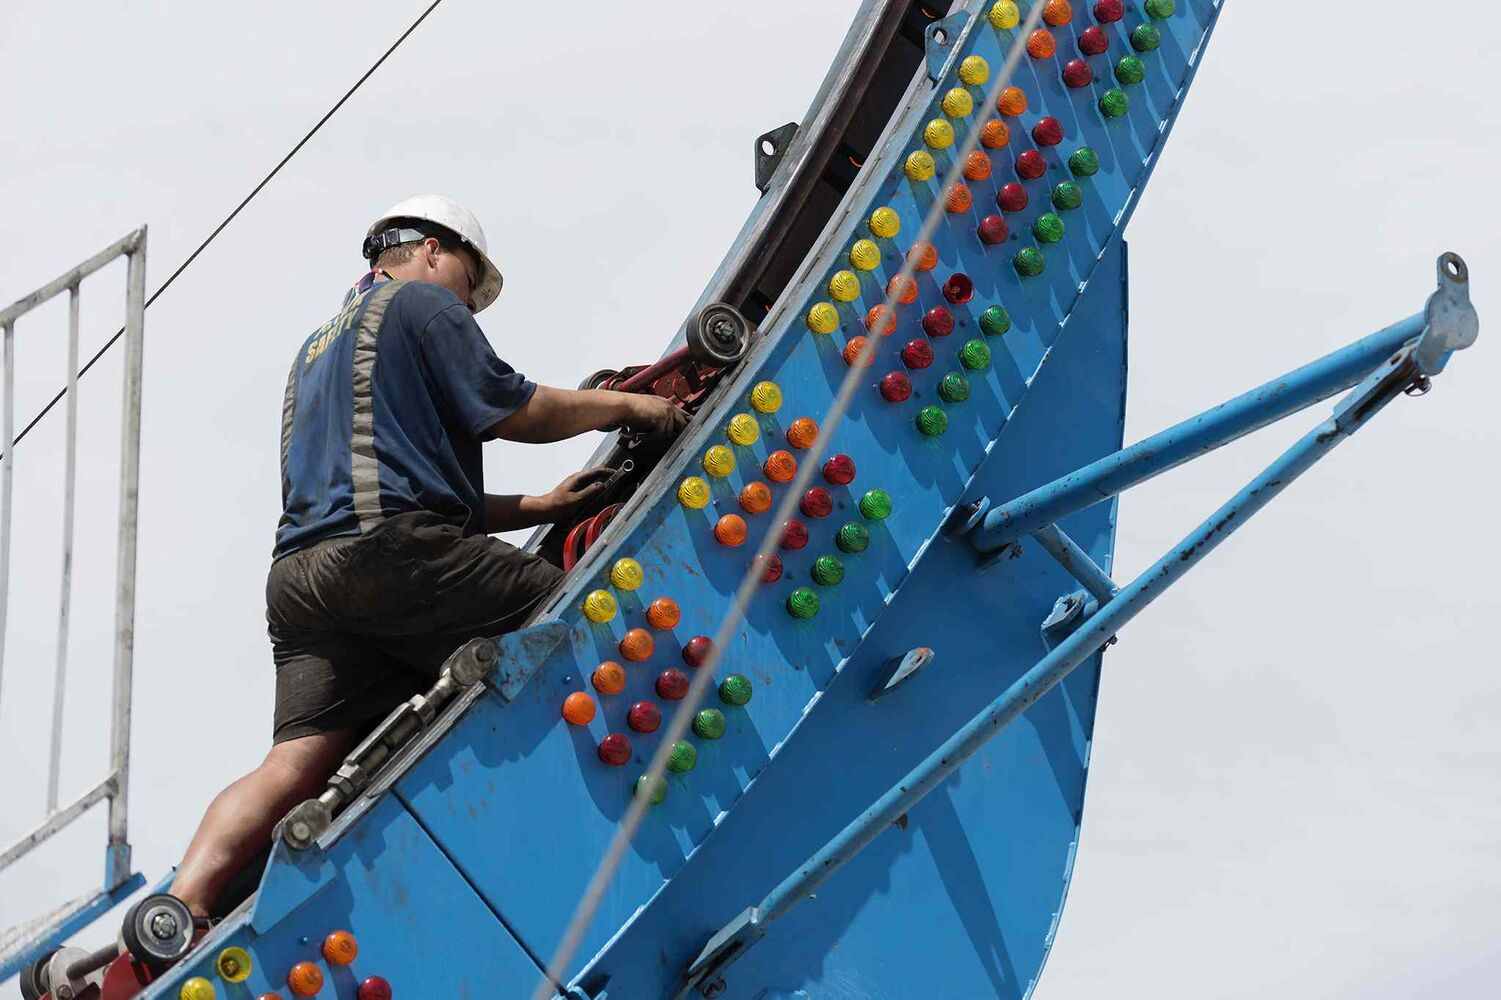 Roan Van Der Westhuizen works on preparing the Fire Ball ride at the Red River Ex before opening day June 13. (Sarah Taylor / Winnipeg Free Press)